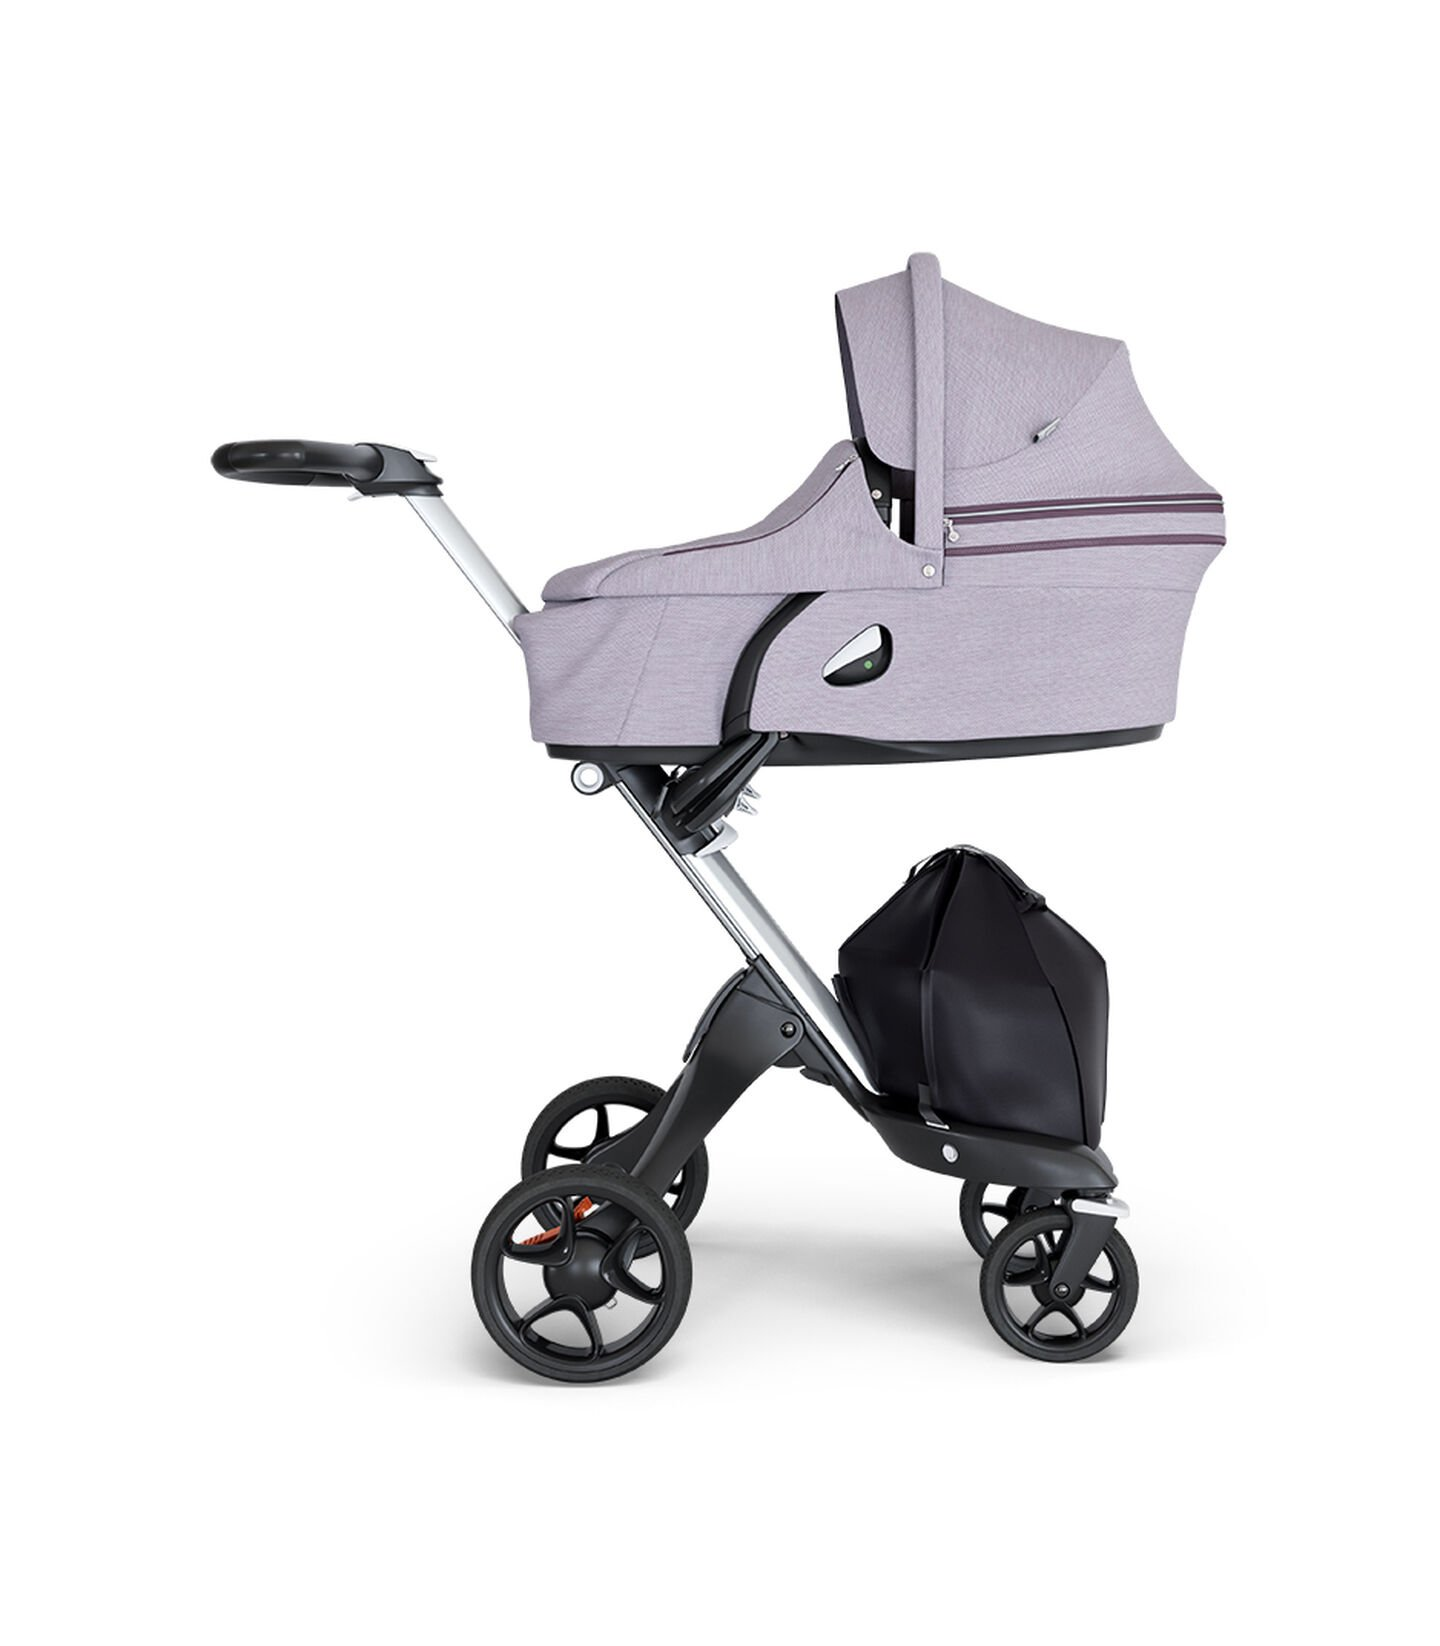 Stokke® Xplory® wtih Silver Chassis and Leatherette Black handle. Stokke® Stroller Carry Cot Brushed Lilac.